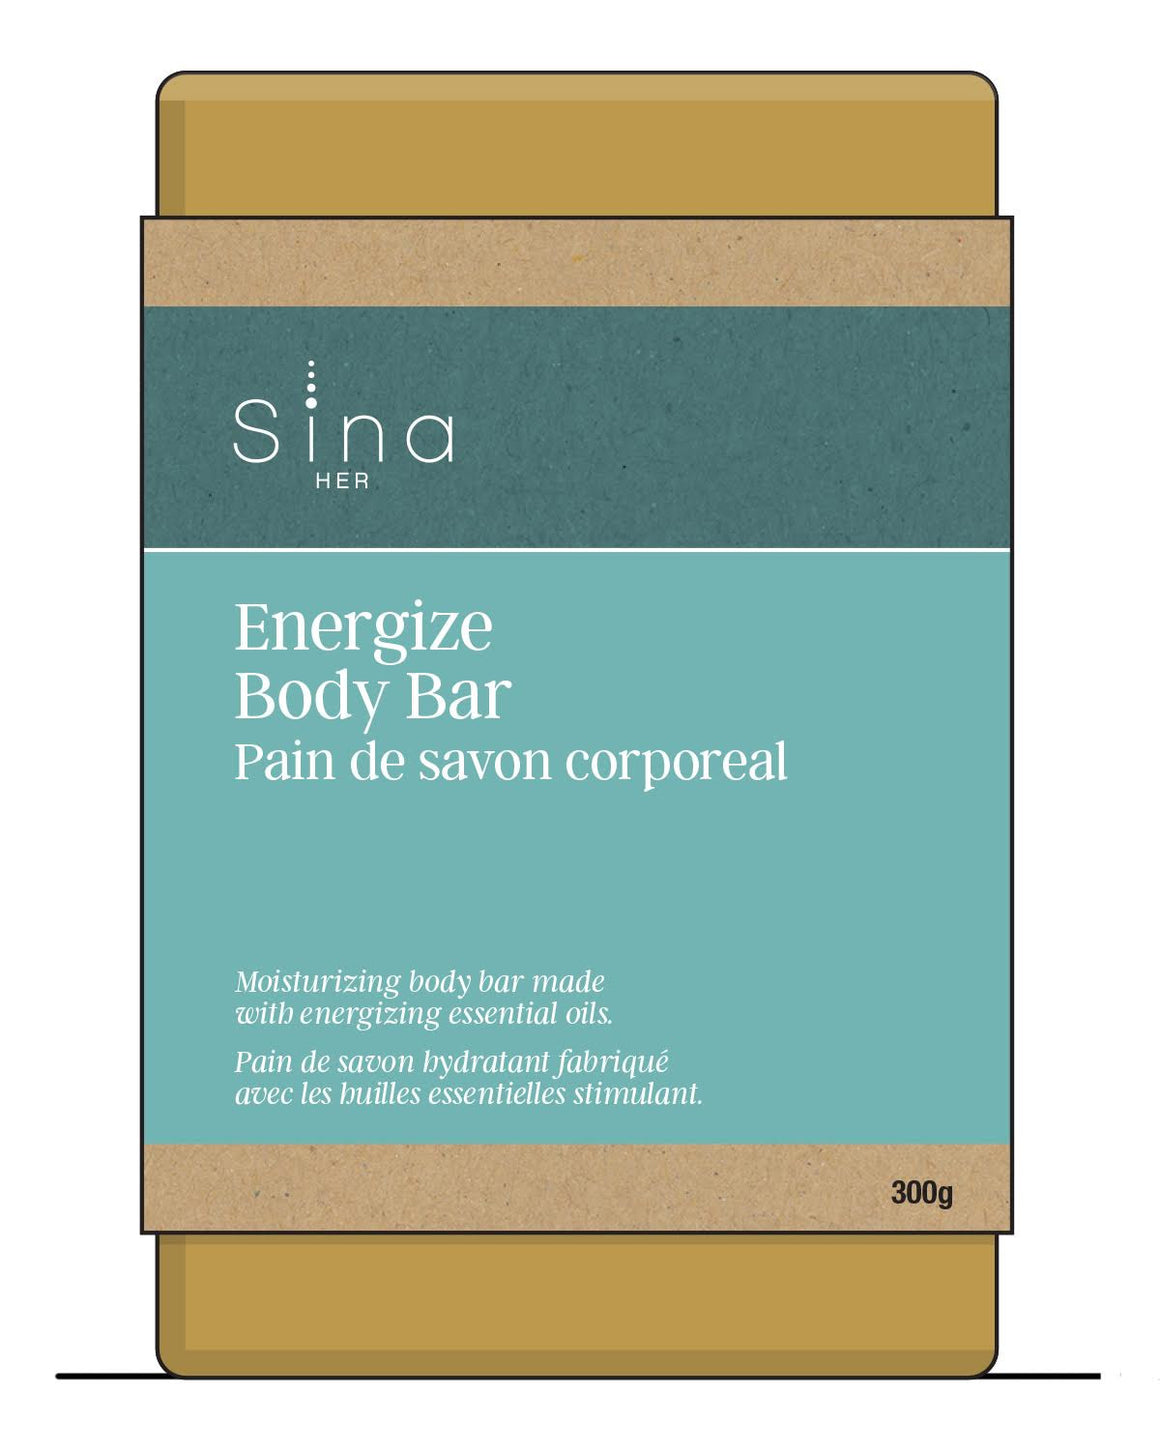 Essential Oils Body Bar for Energy and Relief of Fatigue